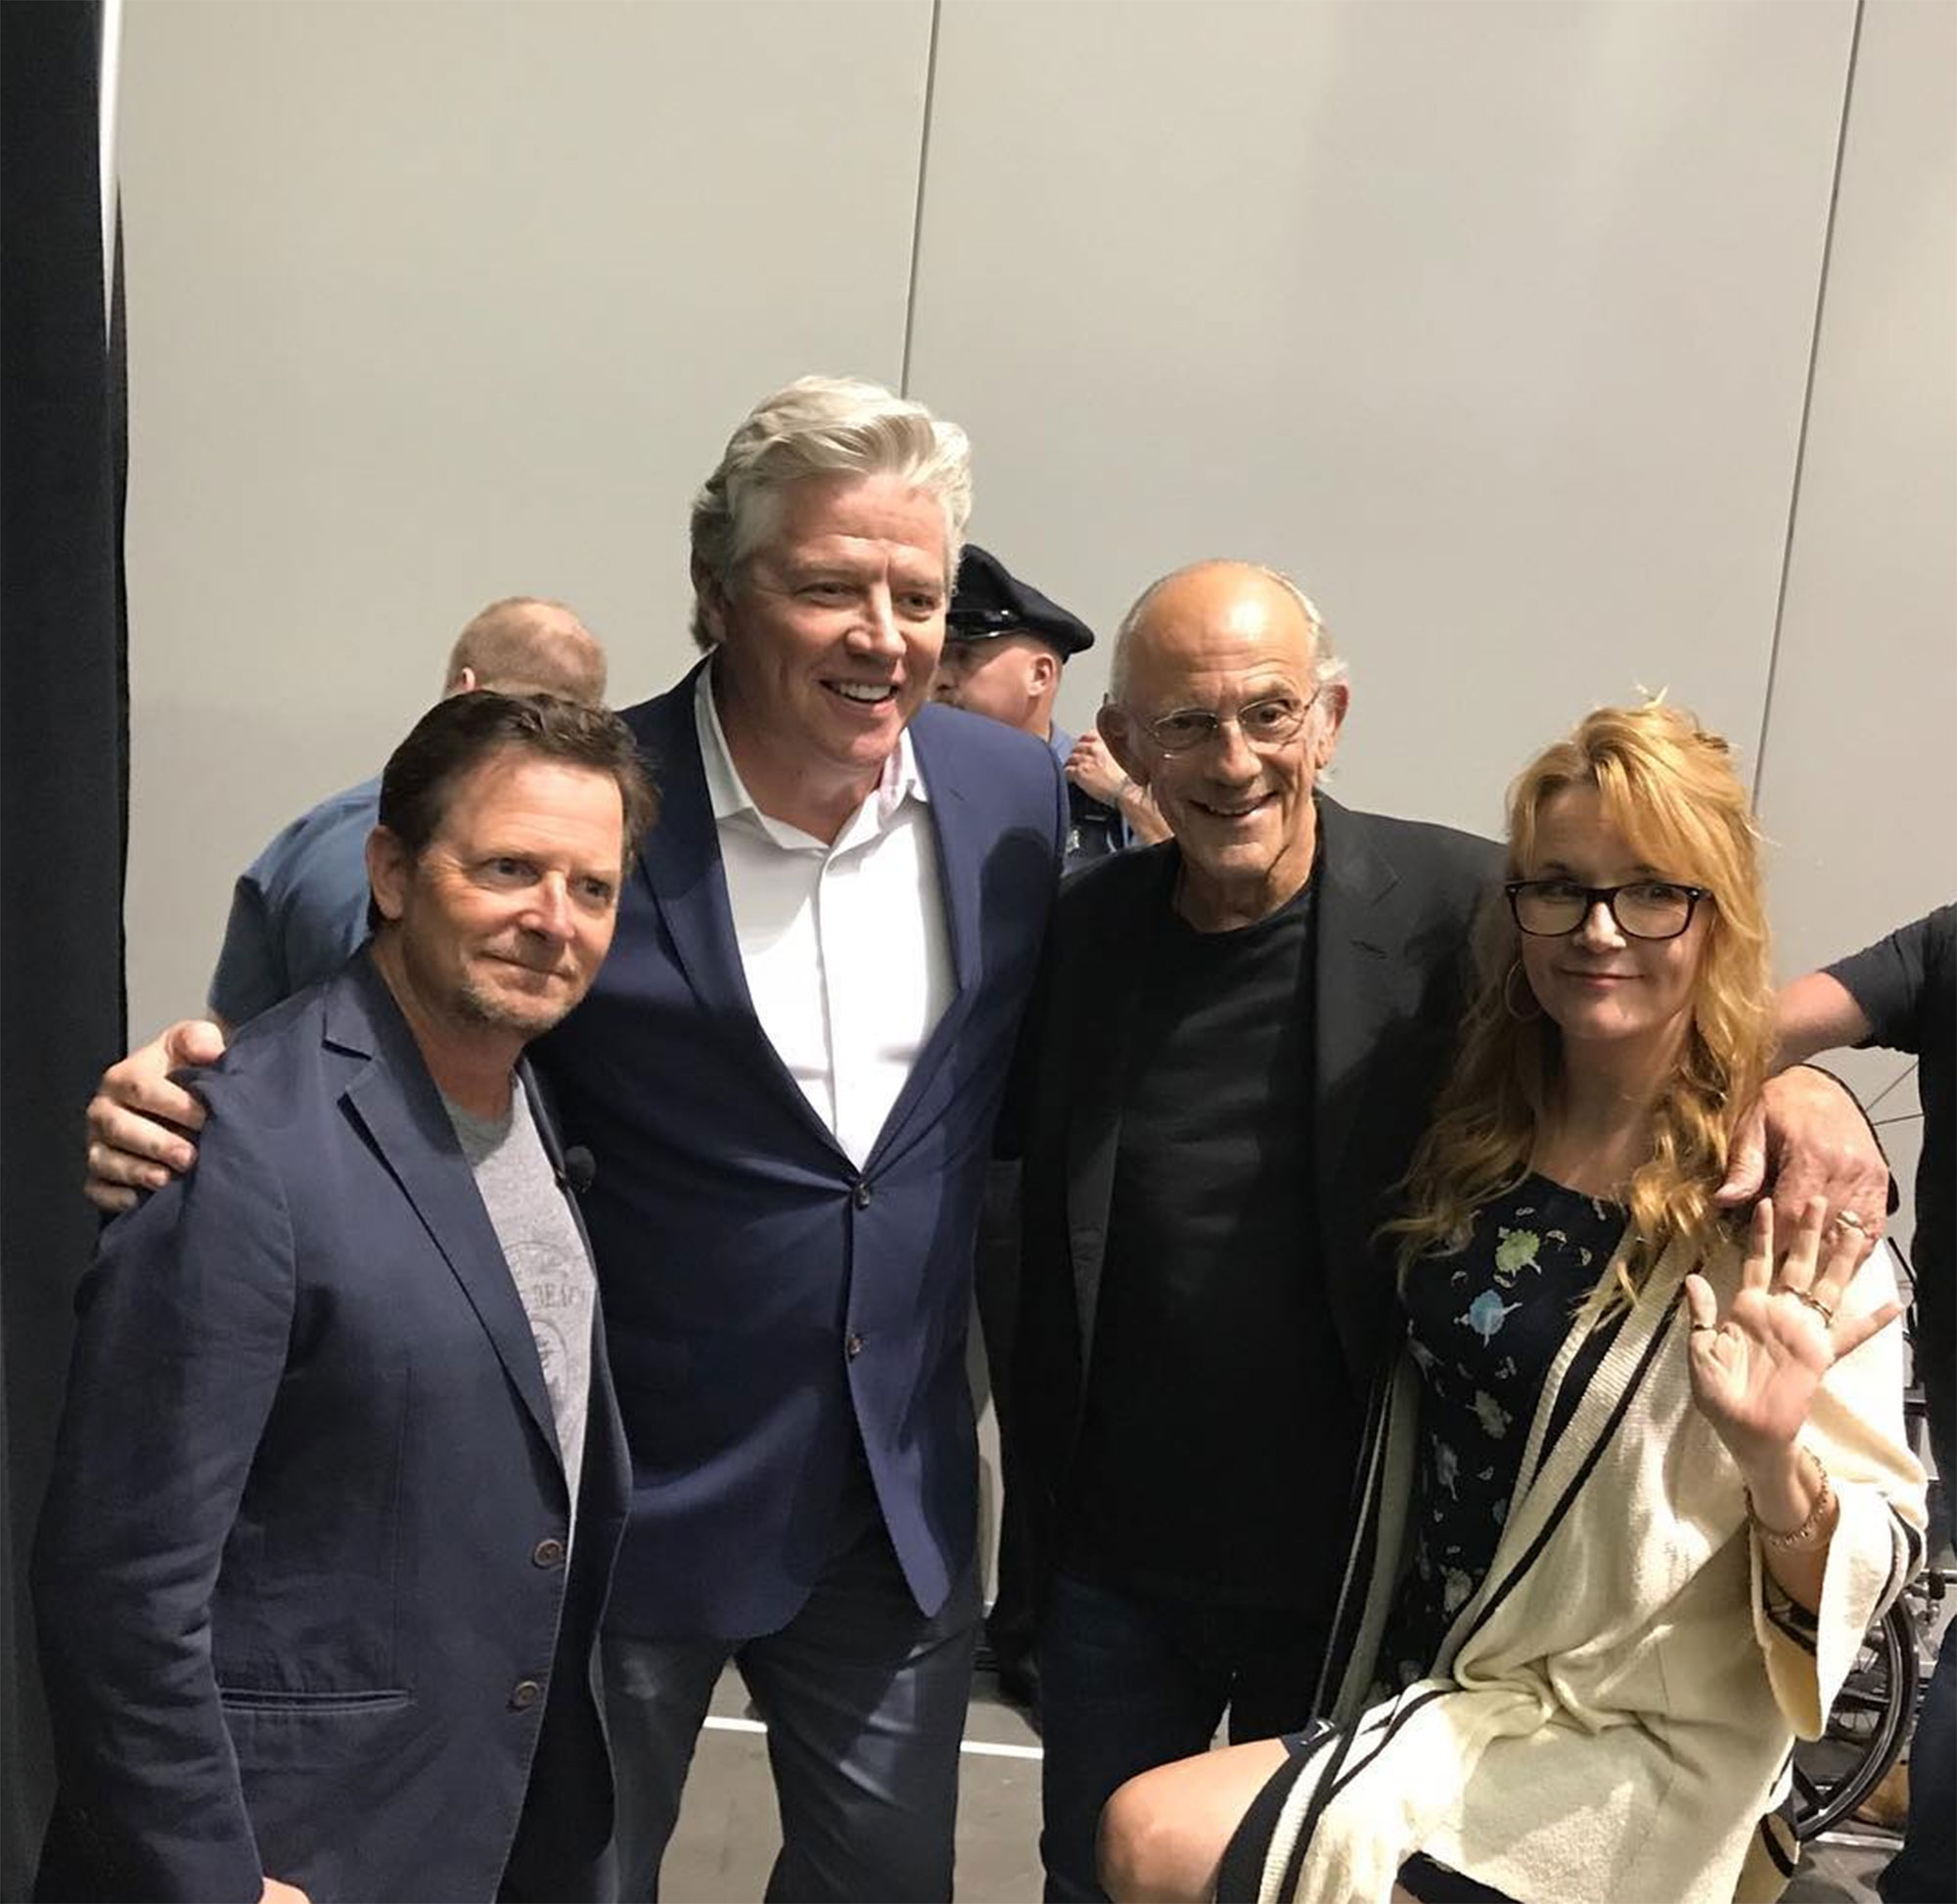 """back to the future Michael J. Fox, Christopher Lloyd, Lea Thompson, and Thomas Wilson - The cast of the hit franchise — Michael J. Fox, Christopher Lloyd, Lea Thompson, and Thomas Wilson — reunited at the Fan Expo in Boston in August 2018. """"Back in 2018, even Biff made it,"""" Fox captioned an Instagram pic of the former costars."""